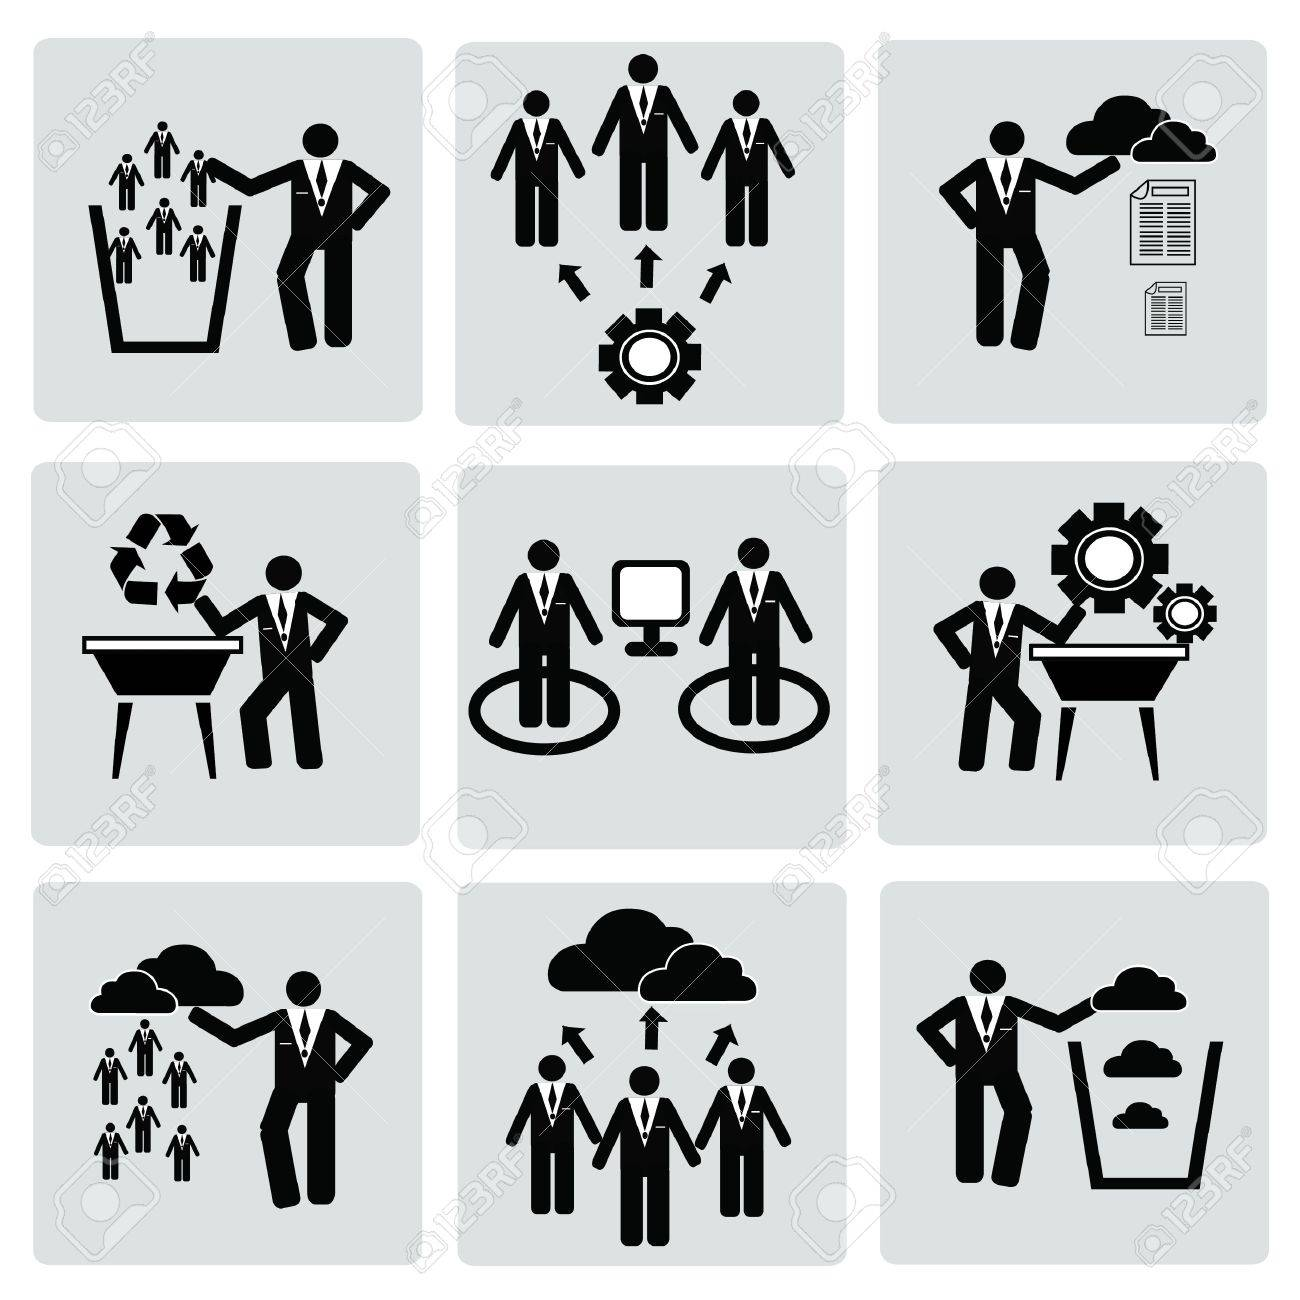 Business management and Human resource,organizati on,icon set,Vector Stock Vector - 18750825